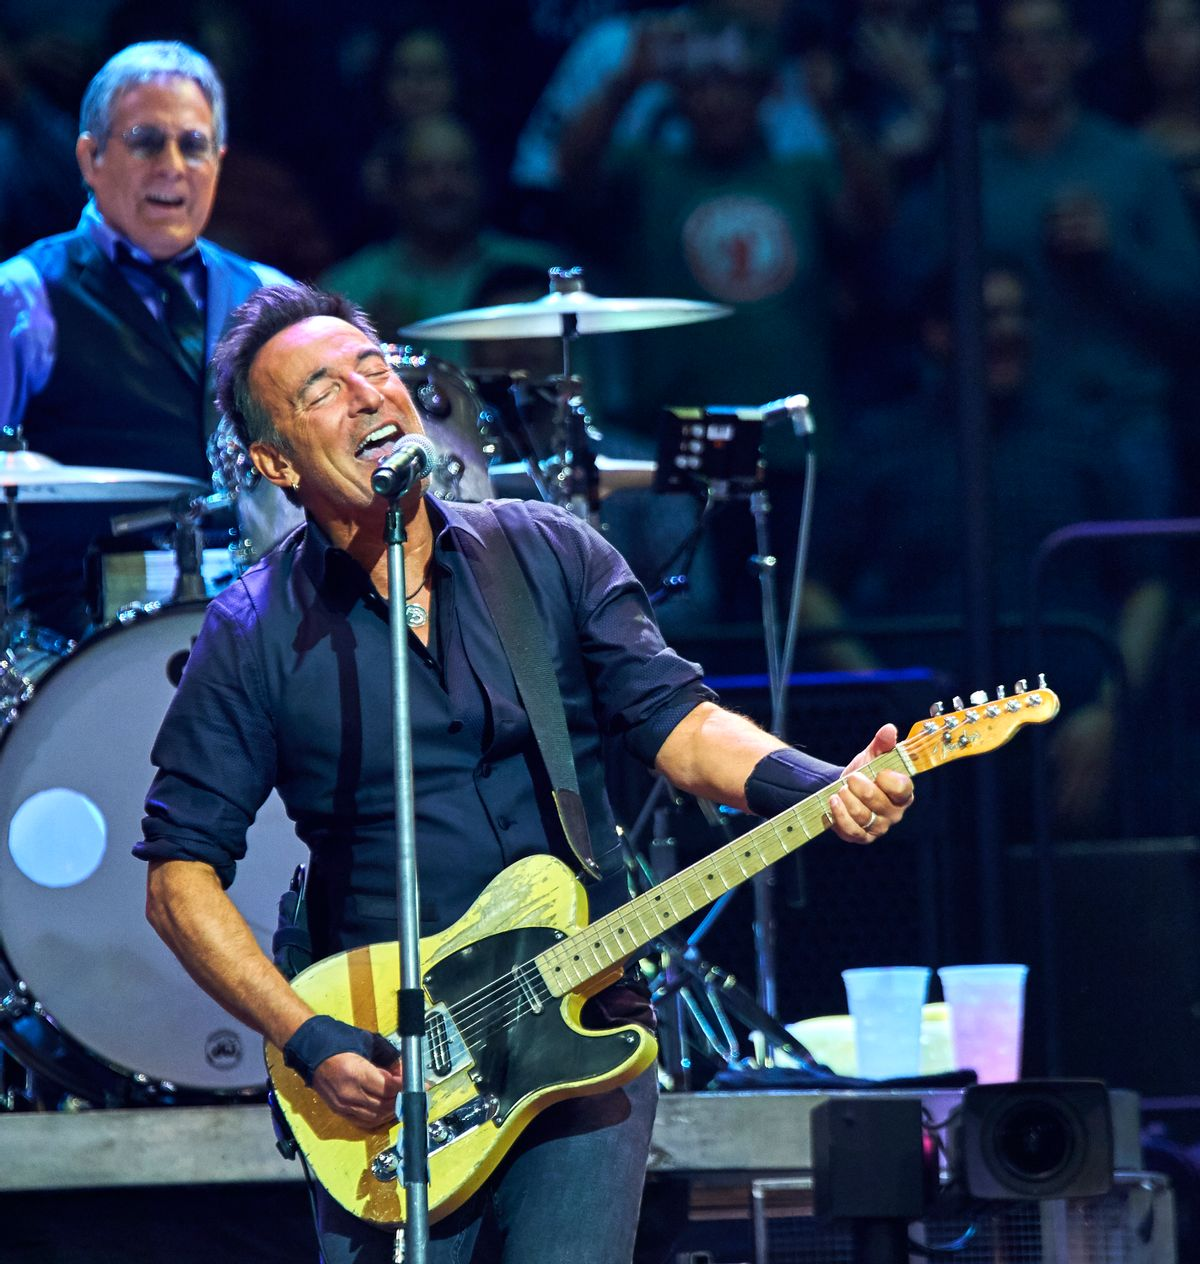 Bruce Springsteen and Max Weinberg, back, perform with the E Street Band at Madison Square Garden, Wednesday, Jan. 27, 2016, in New York.  (Photo by Robert Altman /Invision/AP) (Robert Altman/invision/ap)